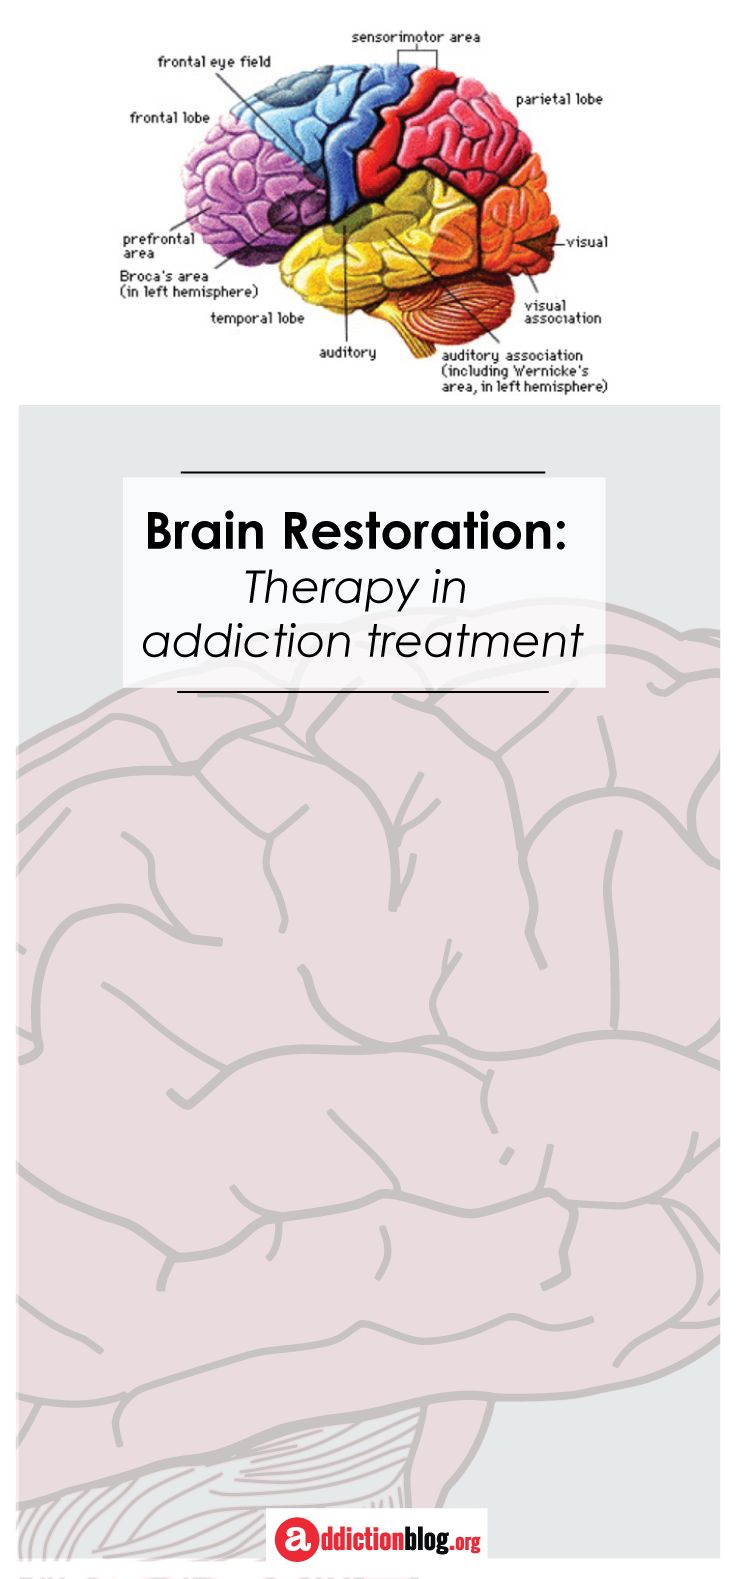 """#BRT or Brain Restoration Therapy is a protocol for the administration of IV NAD (Nicotinamide adenine dinucleotide) with oral supplementation of specific vitamins and amino acids that aid in #addiction #detox and #recovery. Can you really flush your brain of toxins?  Dr. Ken Starr, addiction medicine physician and founder of DR. KEN STARR, MD Addiction Medicine Group explains more in this exclusive #interview. """"a"""" is for addiction 